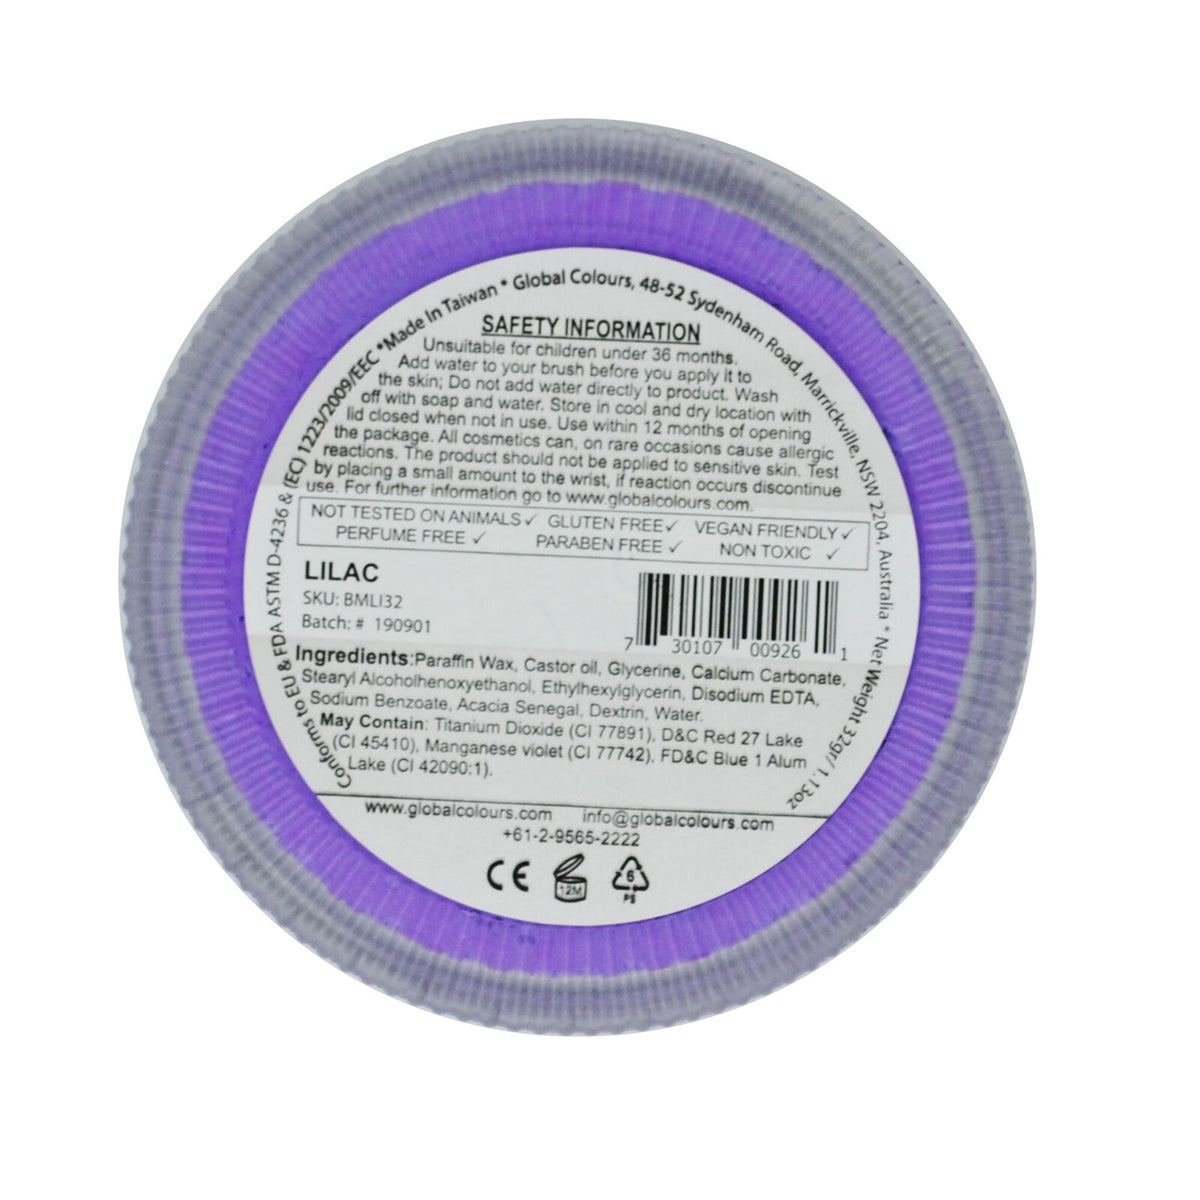 GLOBAL COLOURS 32gm Purple Lilac